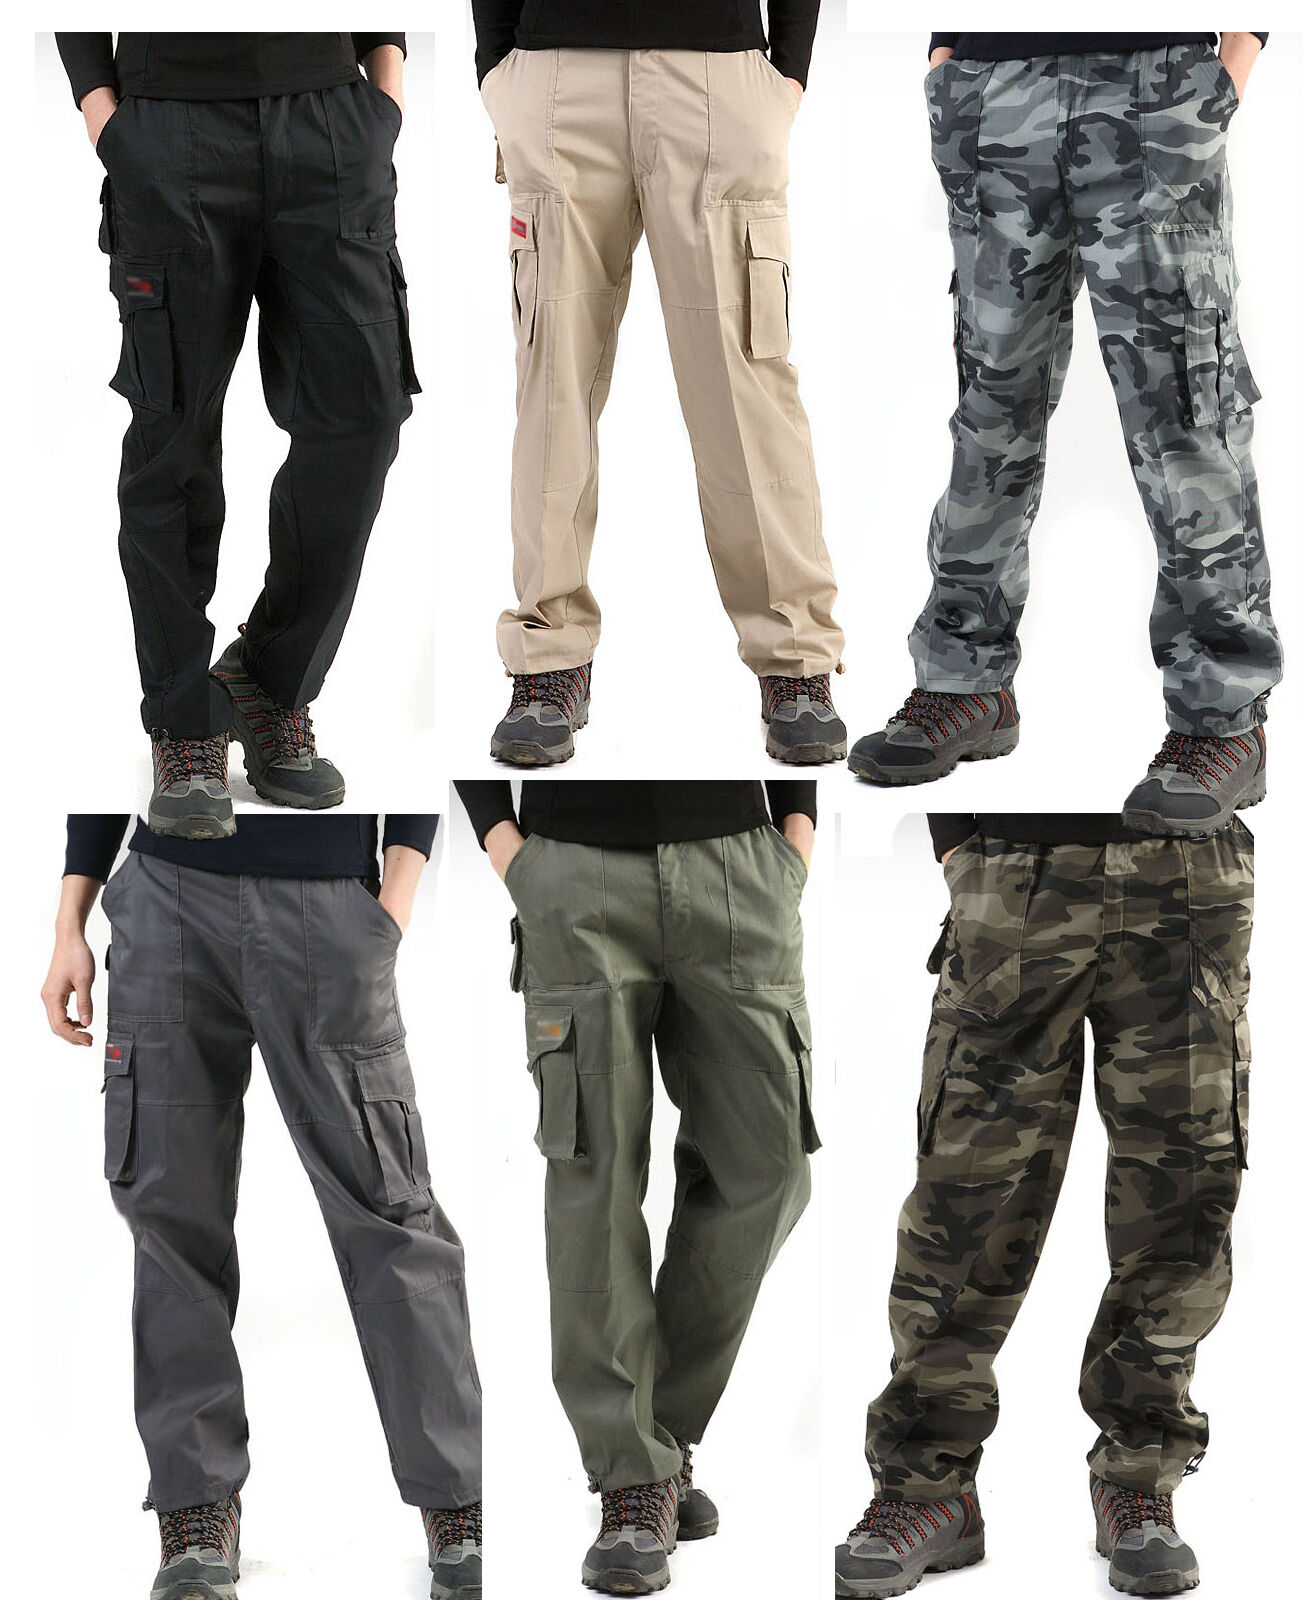 mens camouflage camo combats Workwear work army cargo trousers military Pants